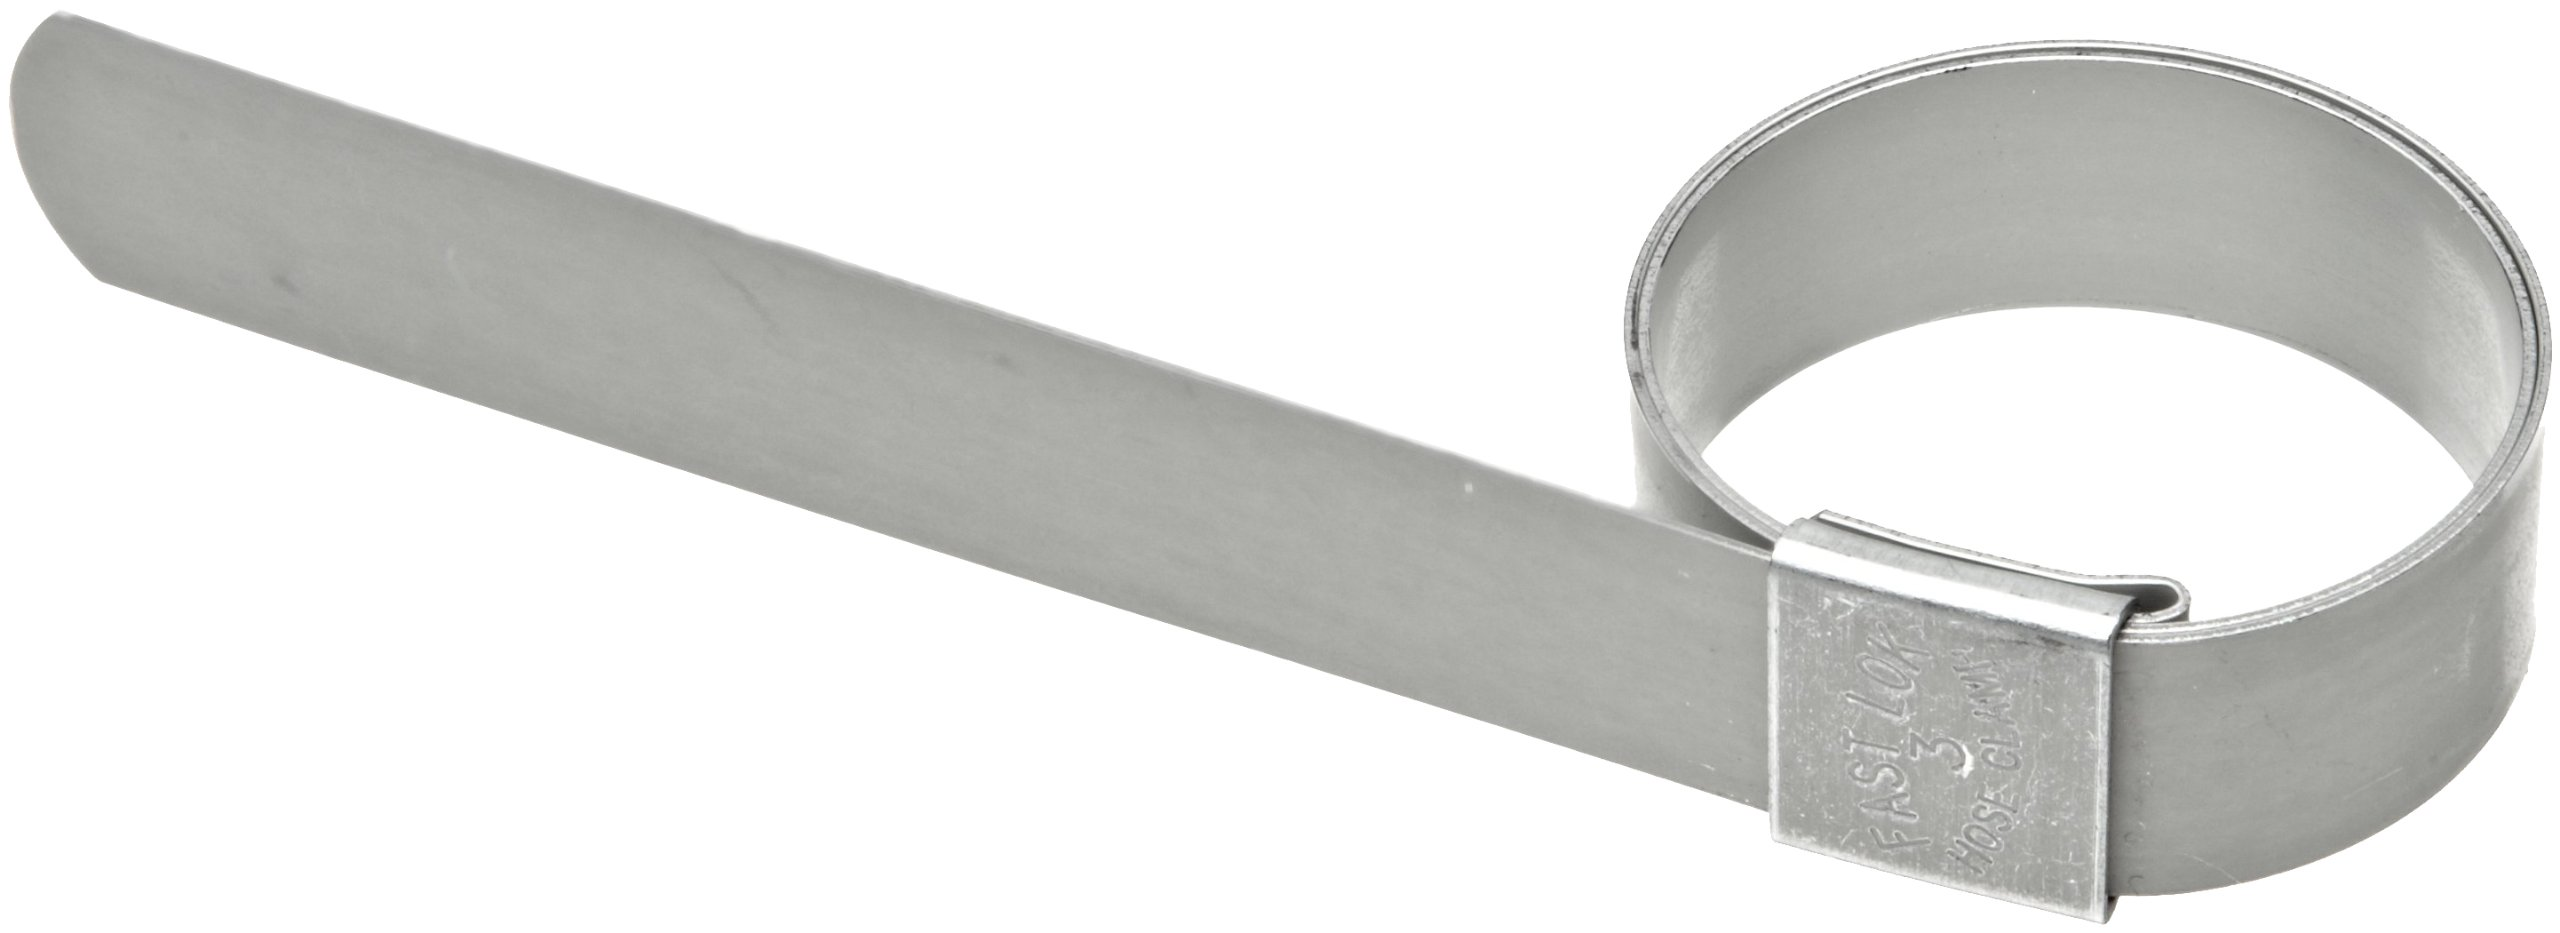 Dixon F5 Galvanized Steel Pre-Formed Center Punch Band Clamp, 5/8'' Band Width, 1-1/4'' ID (Pack of 100)